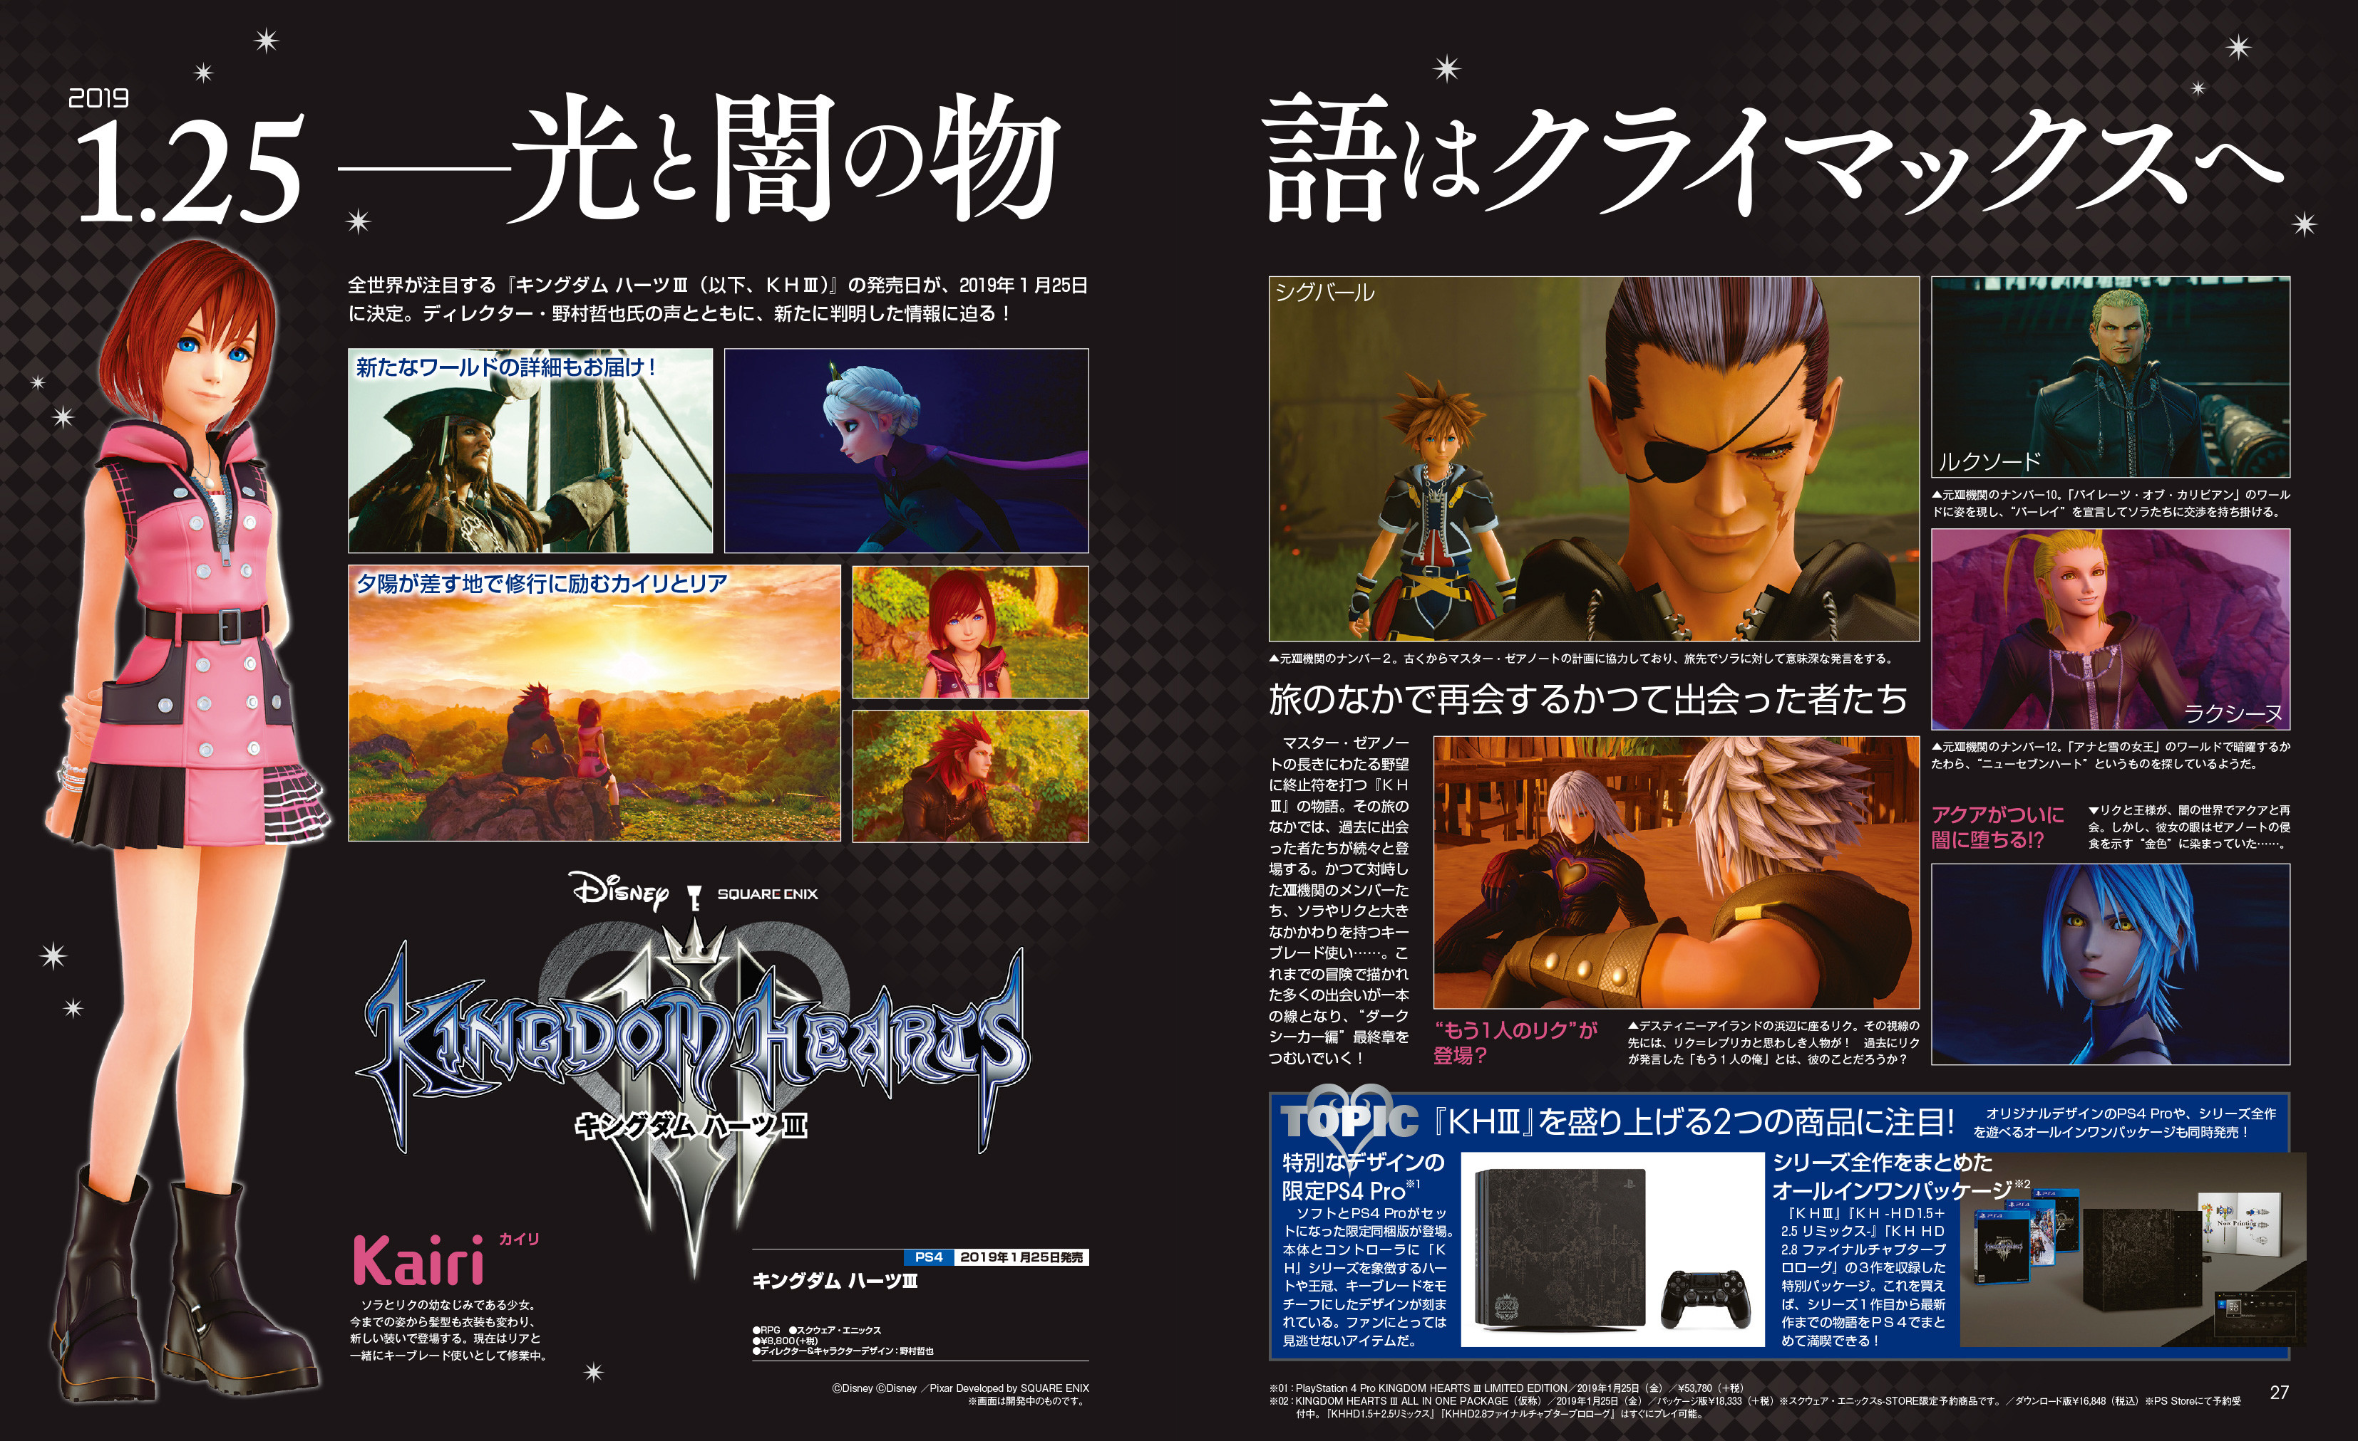 Latest Dengeki Playstation features interview with Nomura on